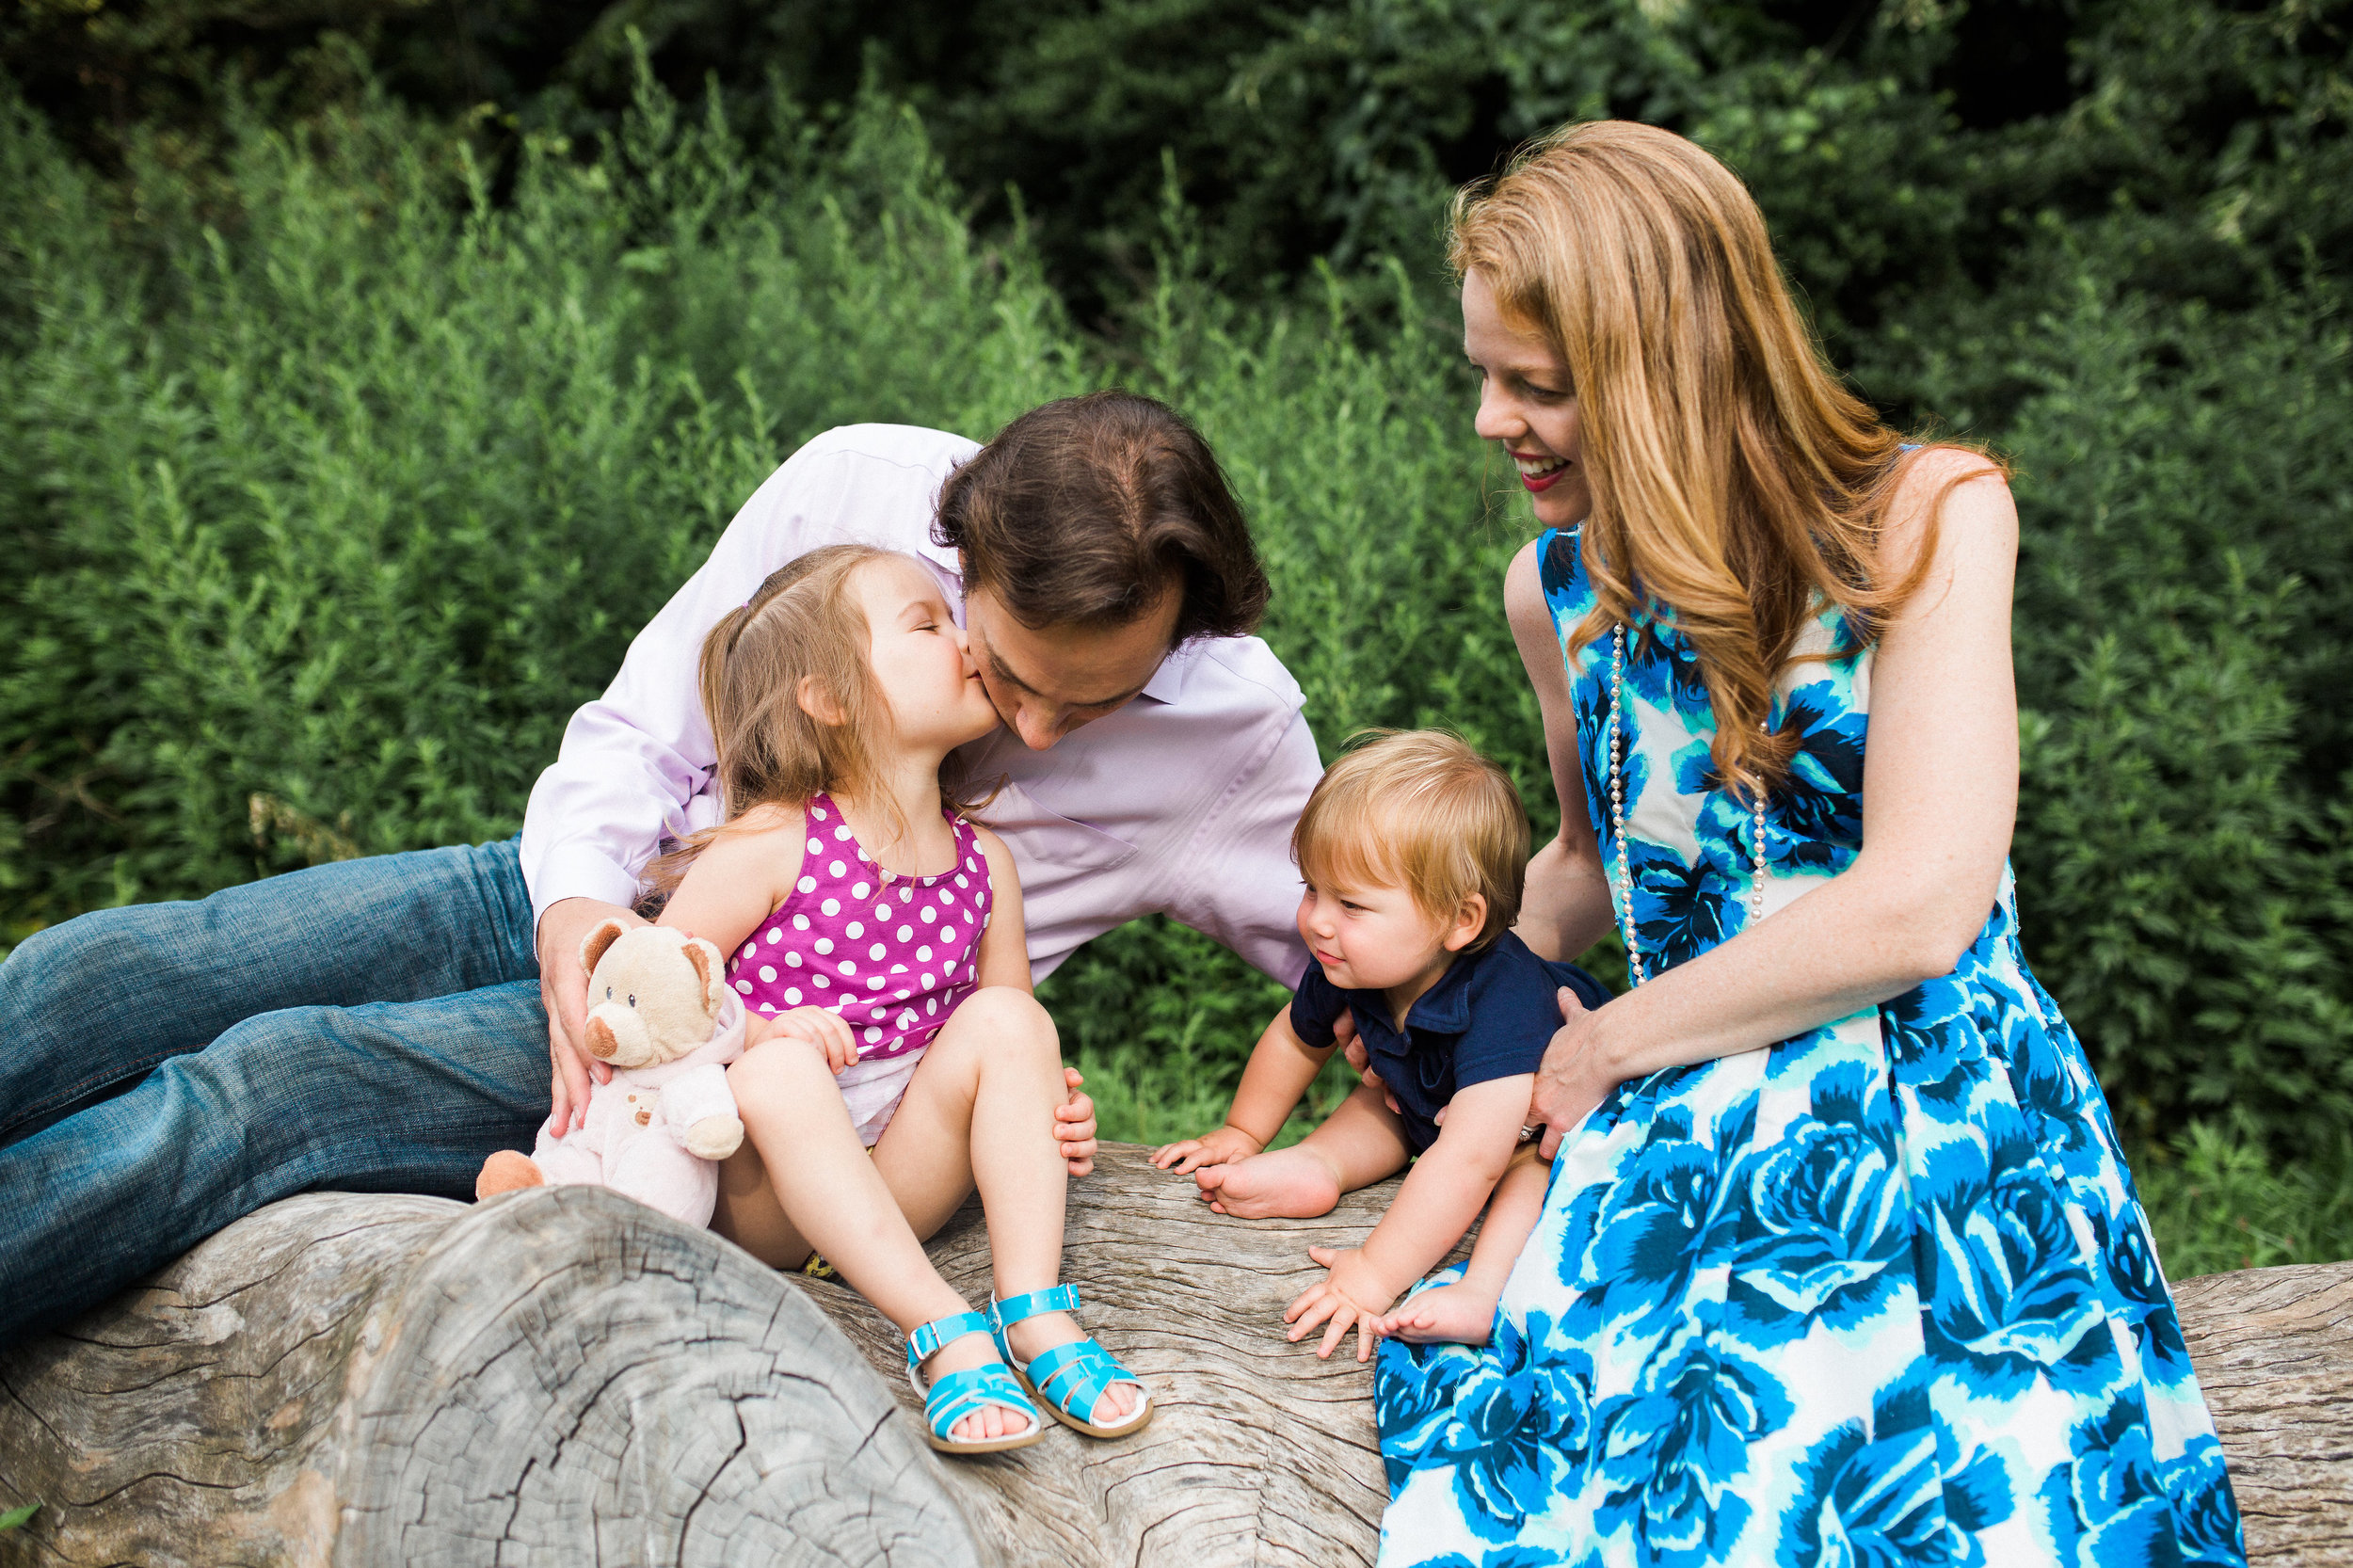 prospect-park-family-photography_natural-playground-2.jpg